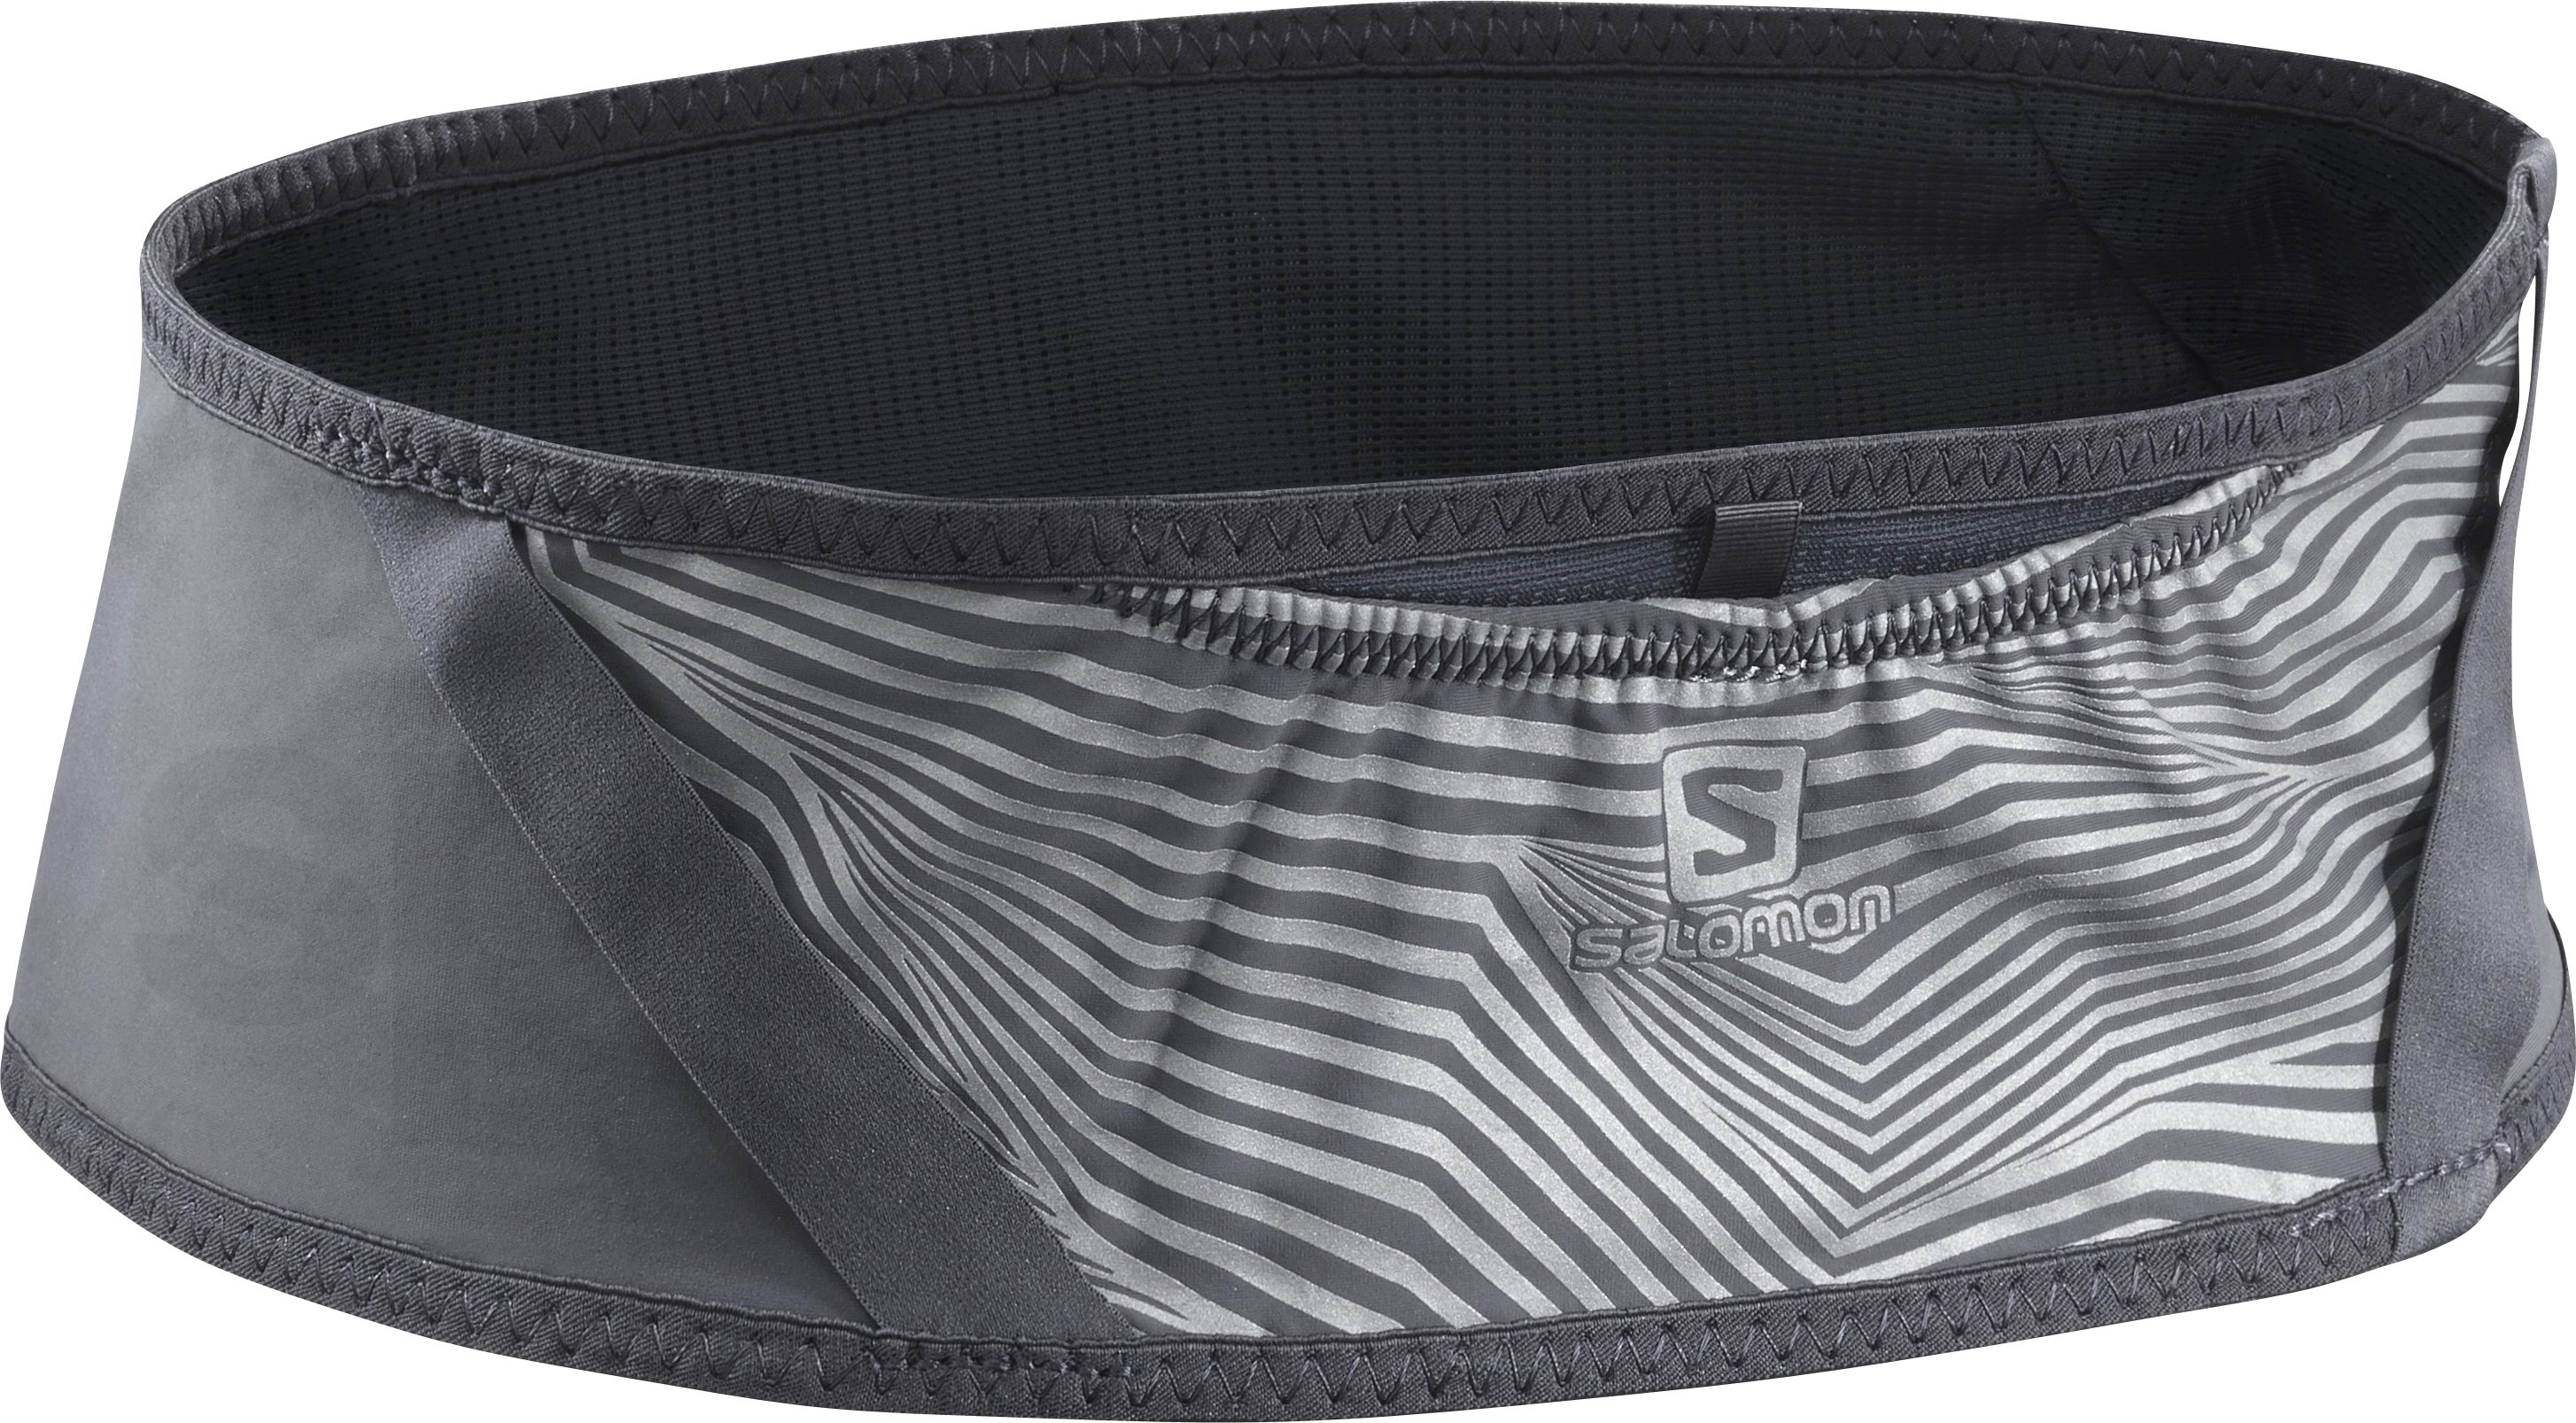 LC1420500_0_GHO_PULSE BELT NOCTURNE-BLACK--.jpg.cq5dam.web.1606.2908